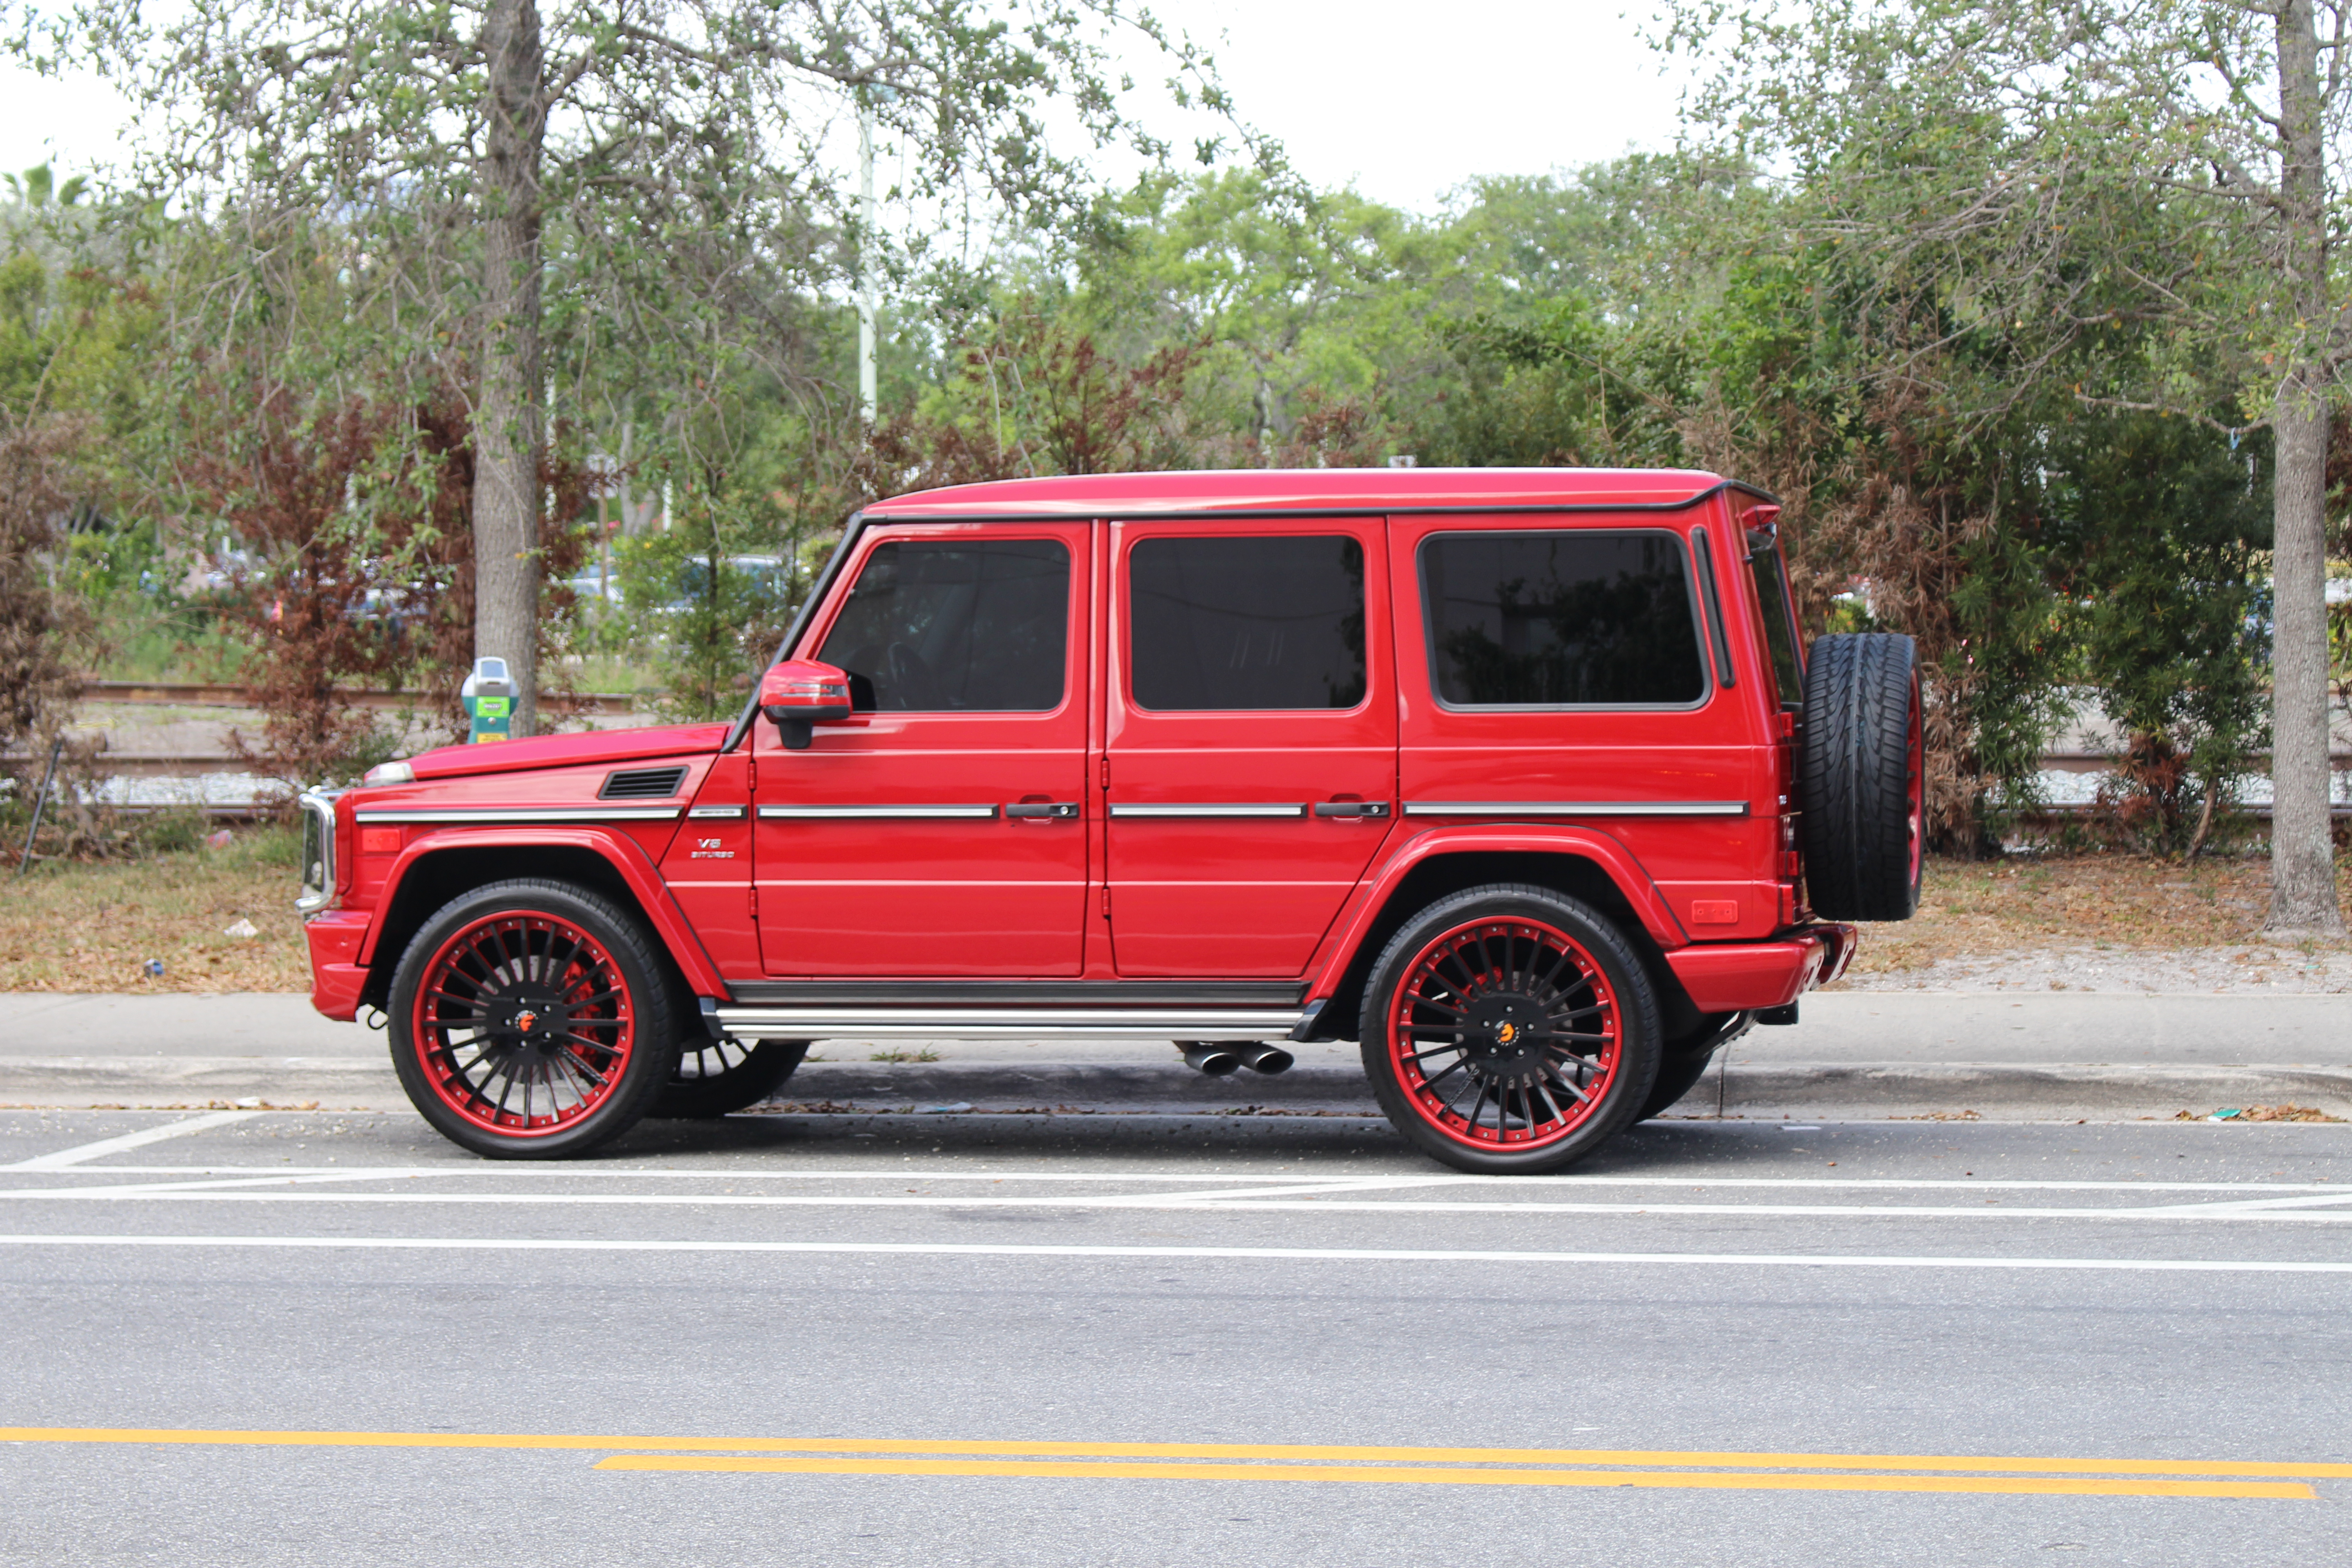 File:Red jeep, West Palm Beach.jpg - Wikimedia Commons